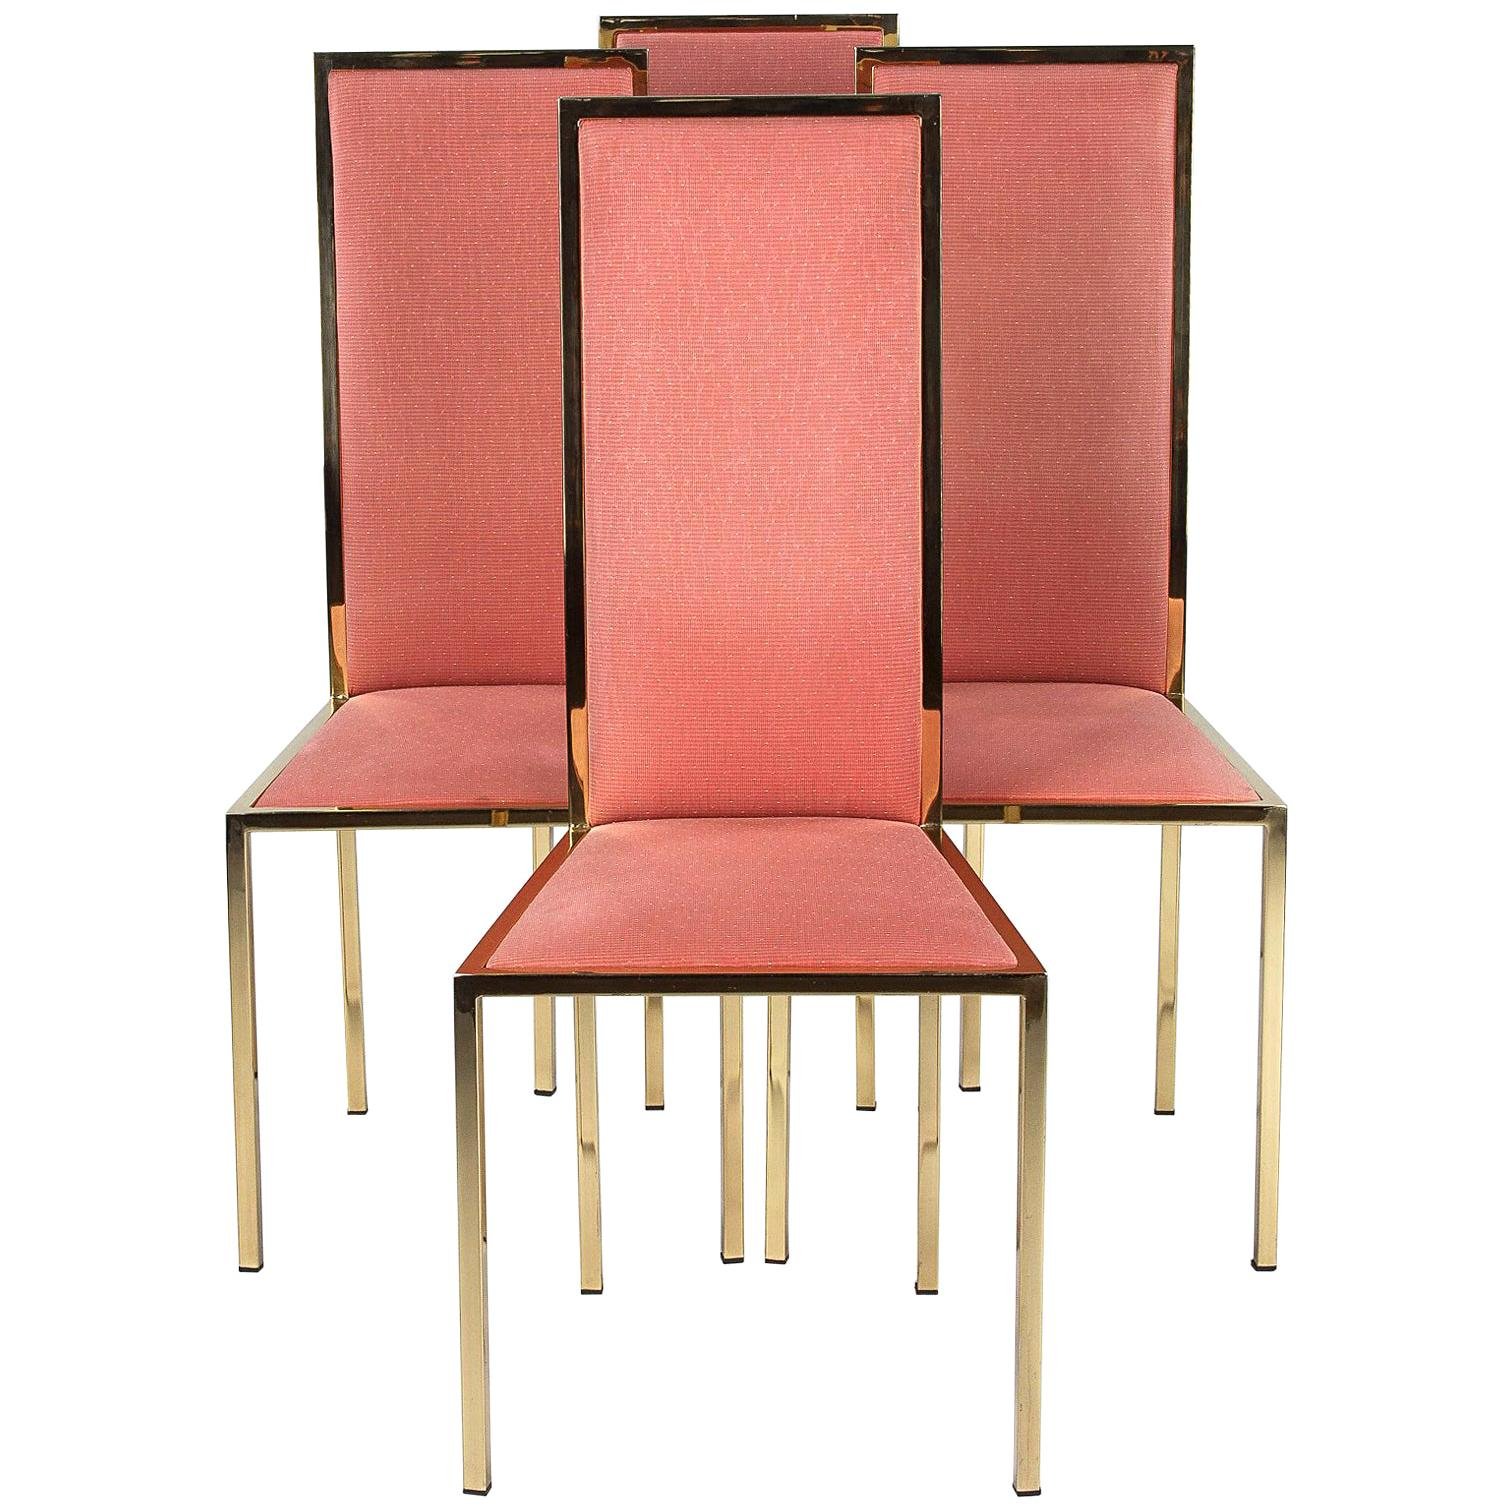 Set of Four Italian Midcentury Brass and Fabric Chairs, 1960s